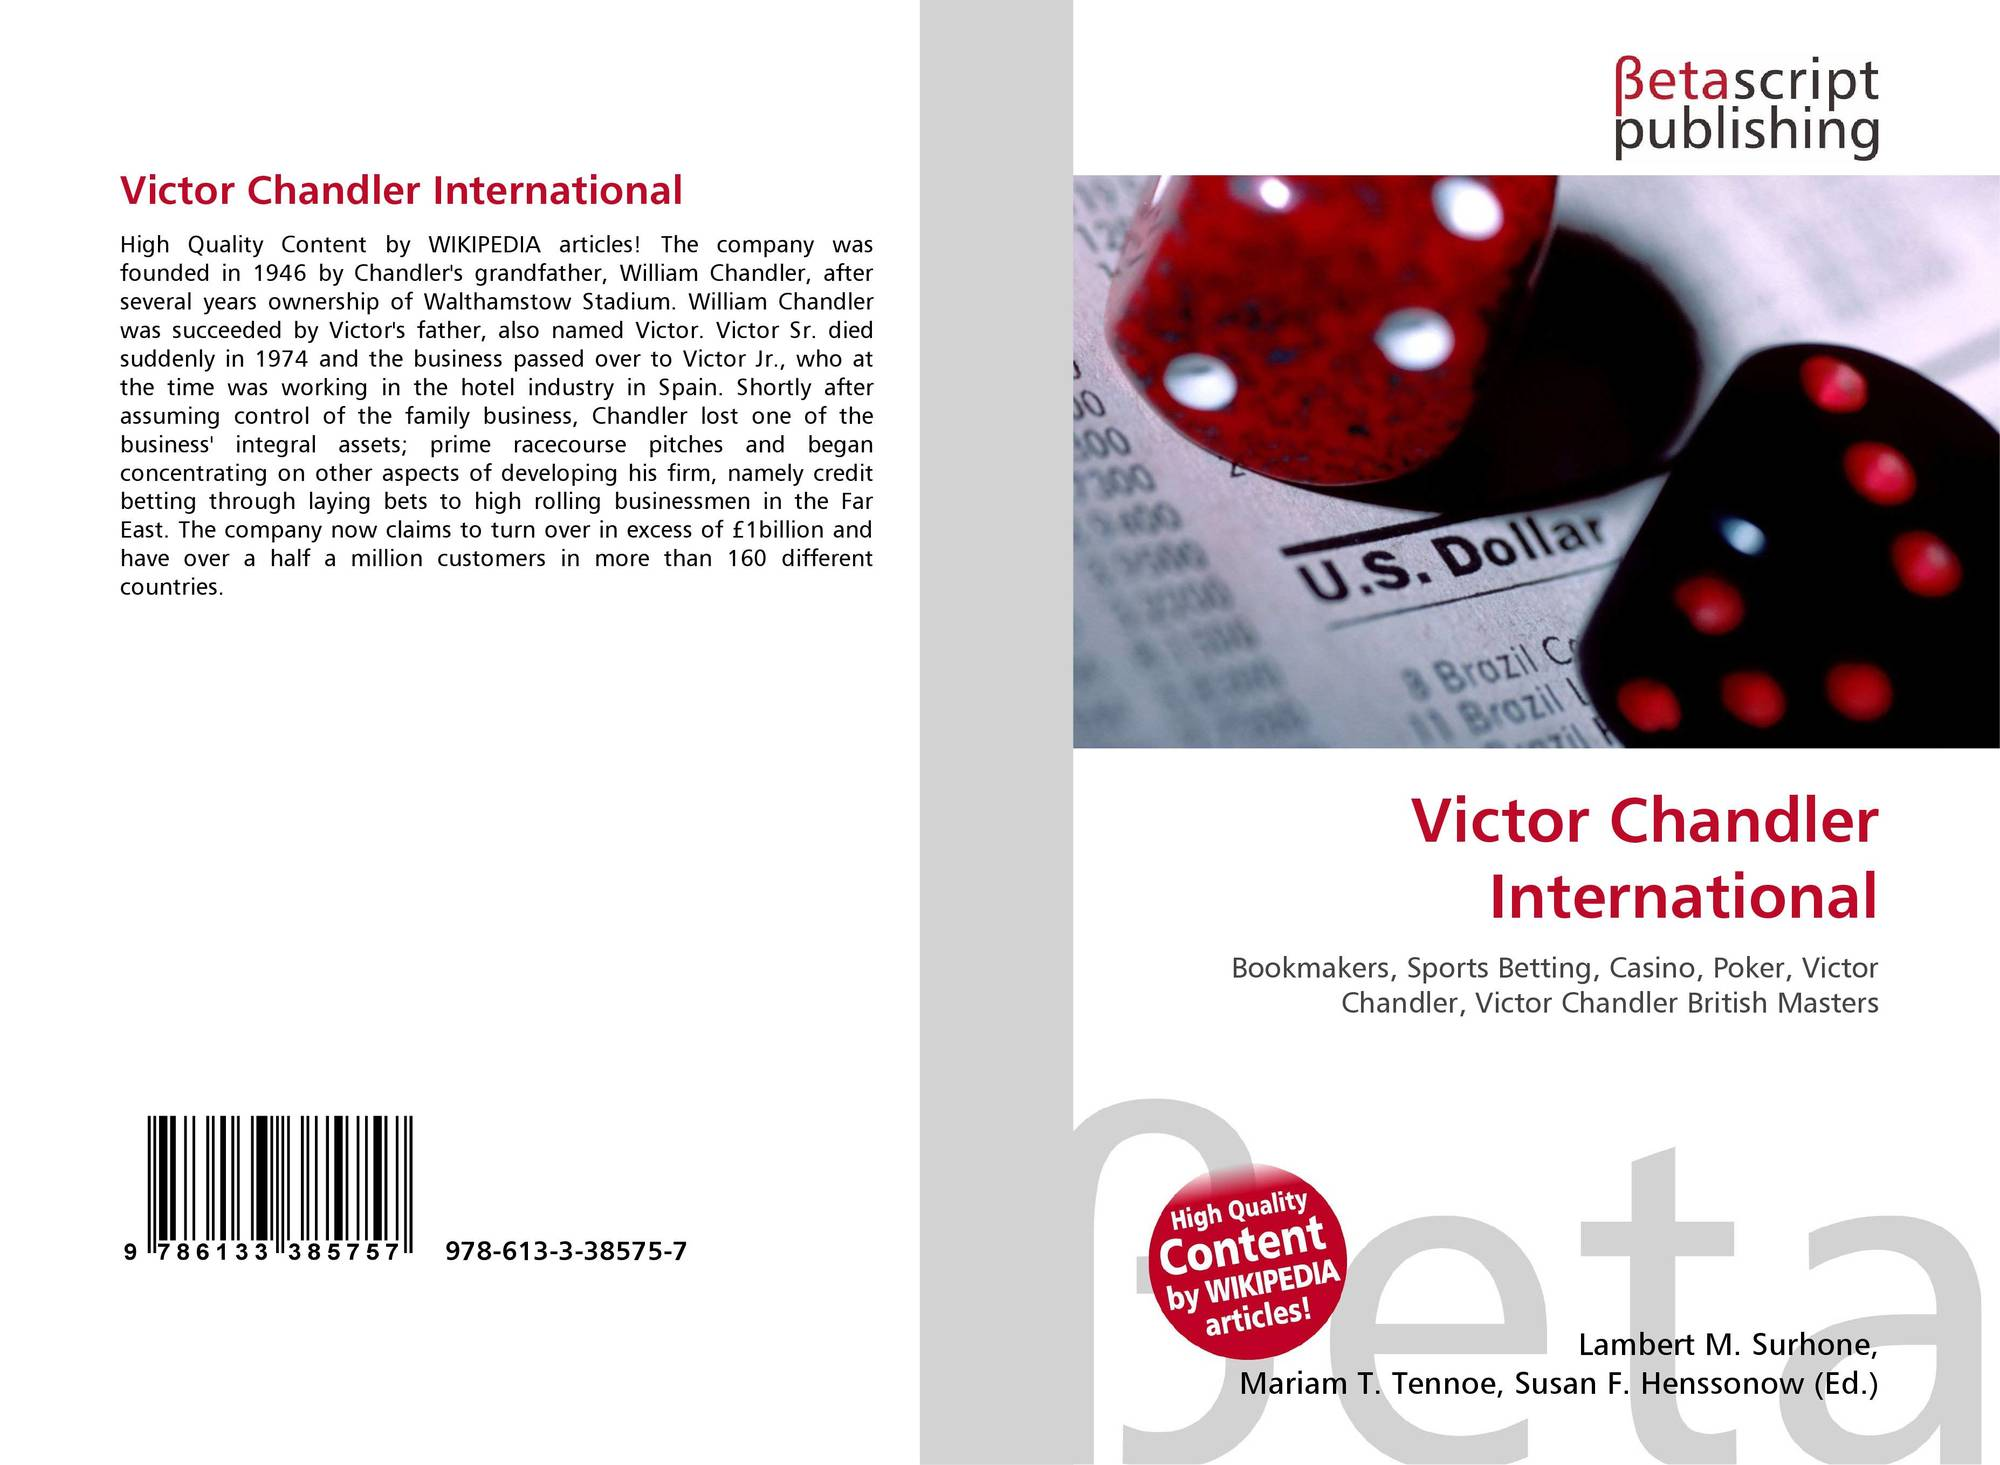 Victor chandler international bookmakers betting legality of online sports betting in the u s